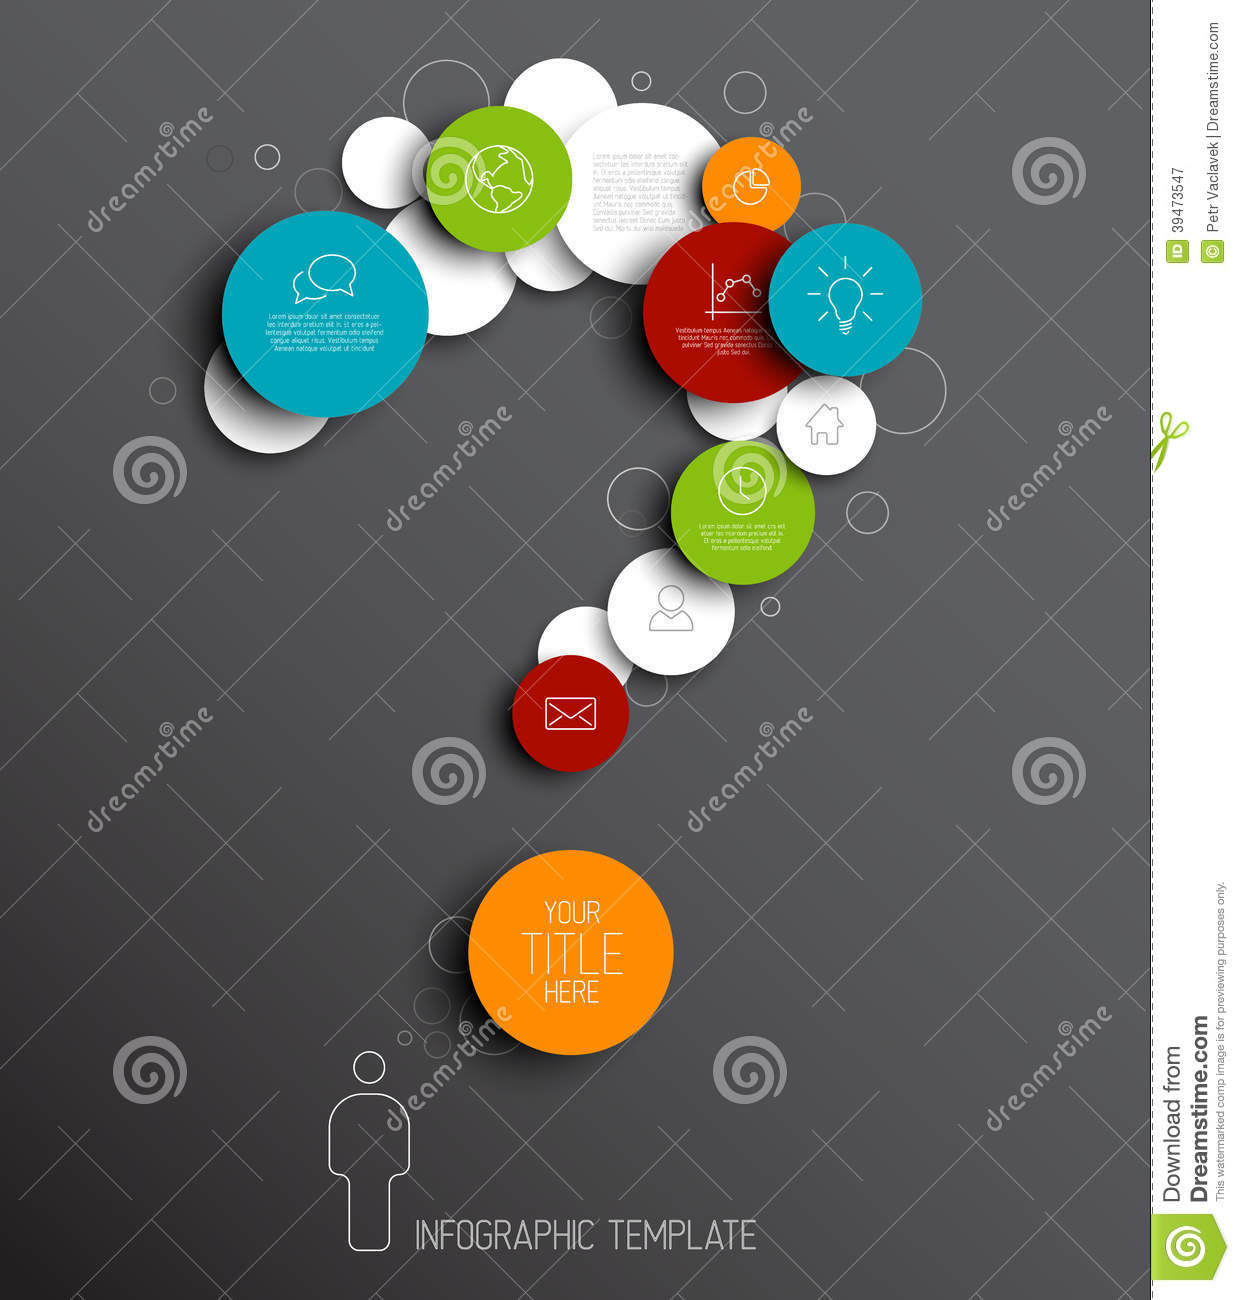 Question Mark - Dark Vector Abstract Circles Infographic Template ...